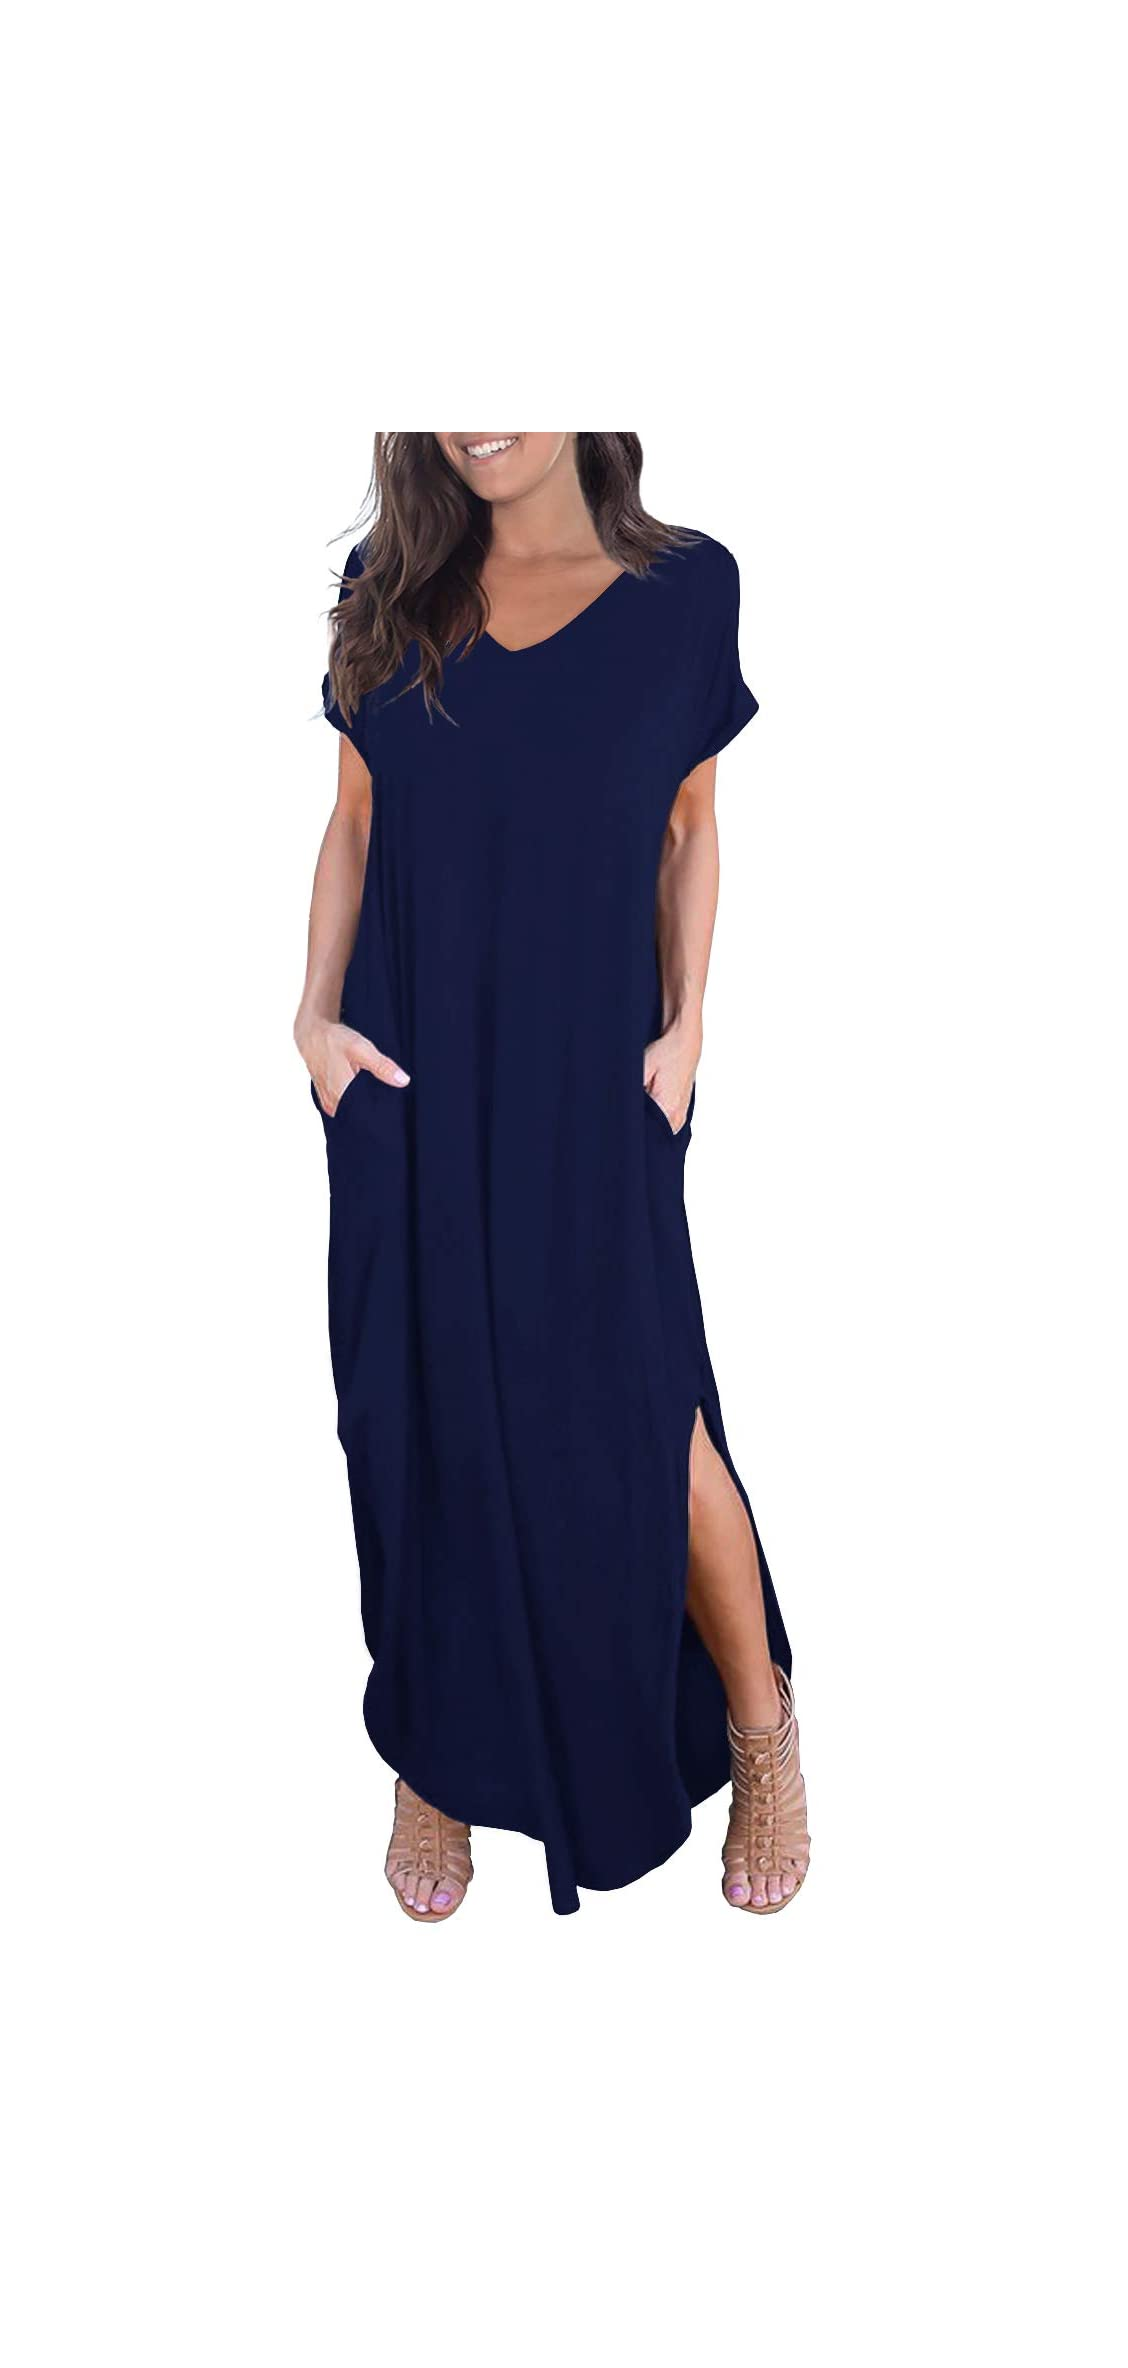 Women's Casual Loose Pocket Long Dress Short Sleeve